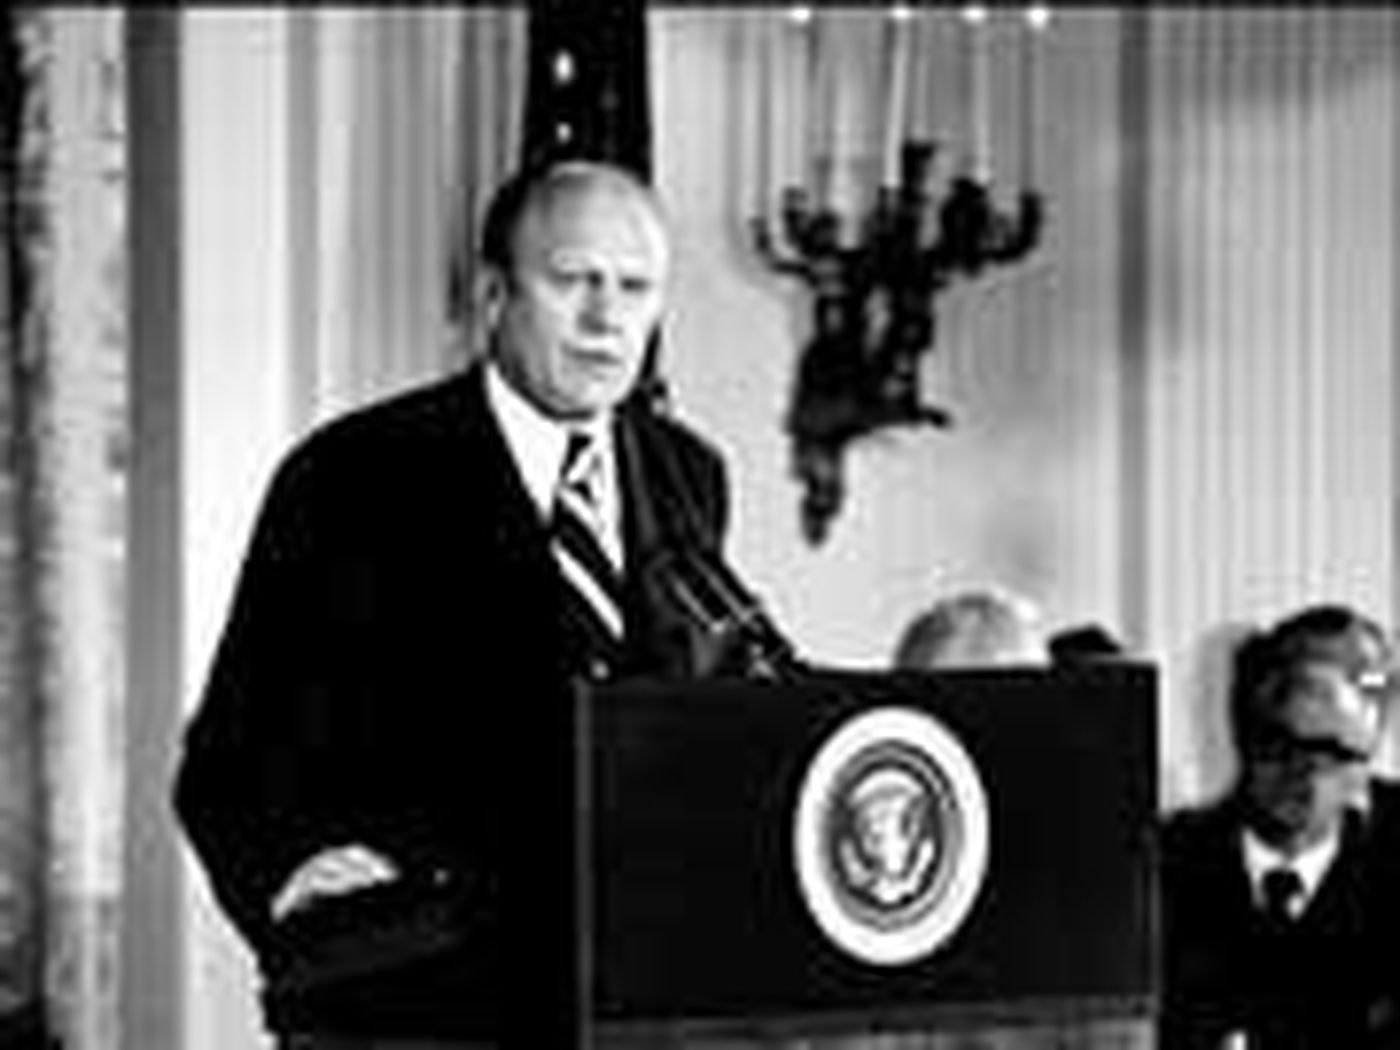 Pres. Gerald R. Ford addresses an audience in the East Room of the White House after being sworn in as the 38th president of the United States on Aug. 9, 1974 following the impeachment of Pres. Richard Nixon. (AP Photo)